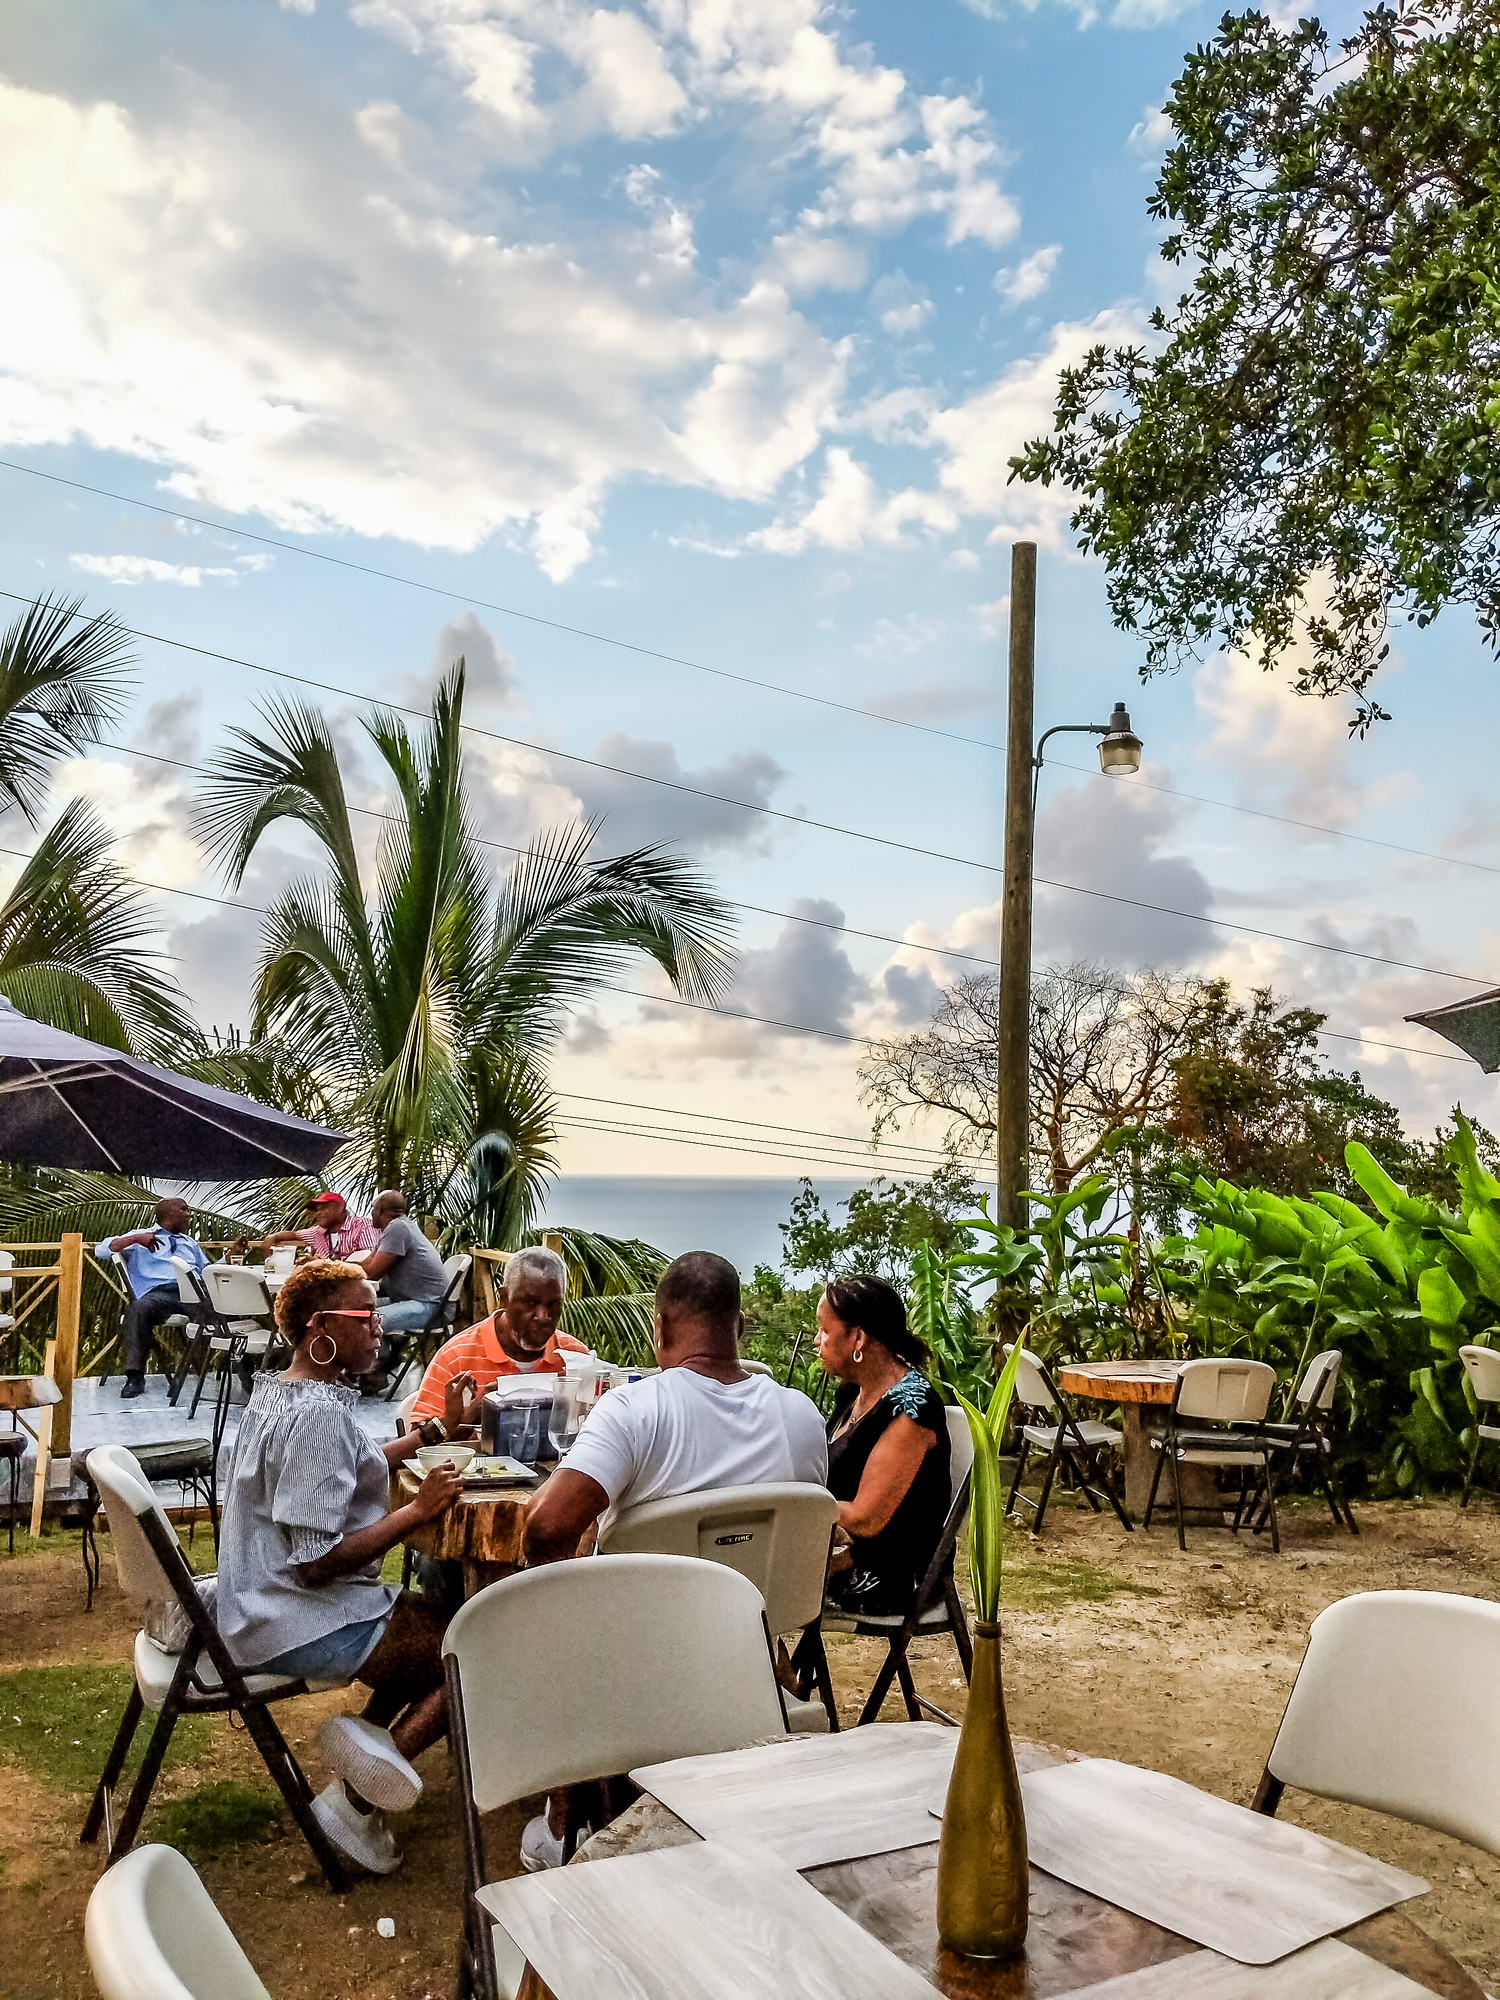 Wondering where to eat in Montego Bay? Peppa's Cool Spot is run by a chef well known on the island and is packed with locals.